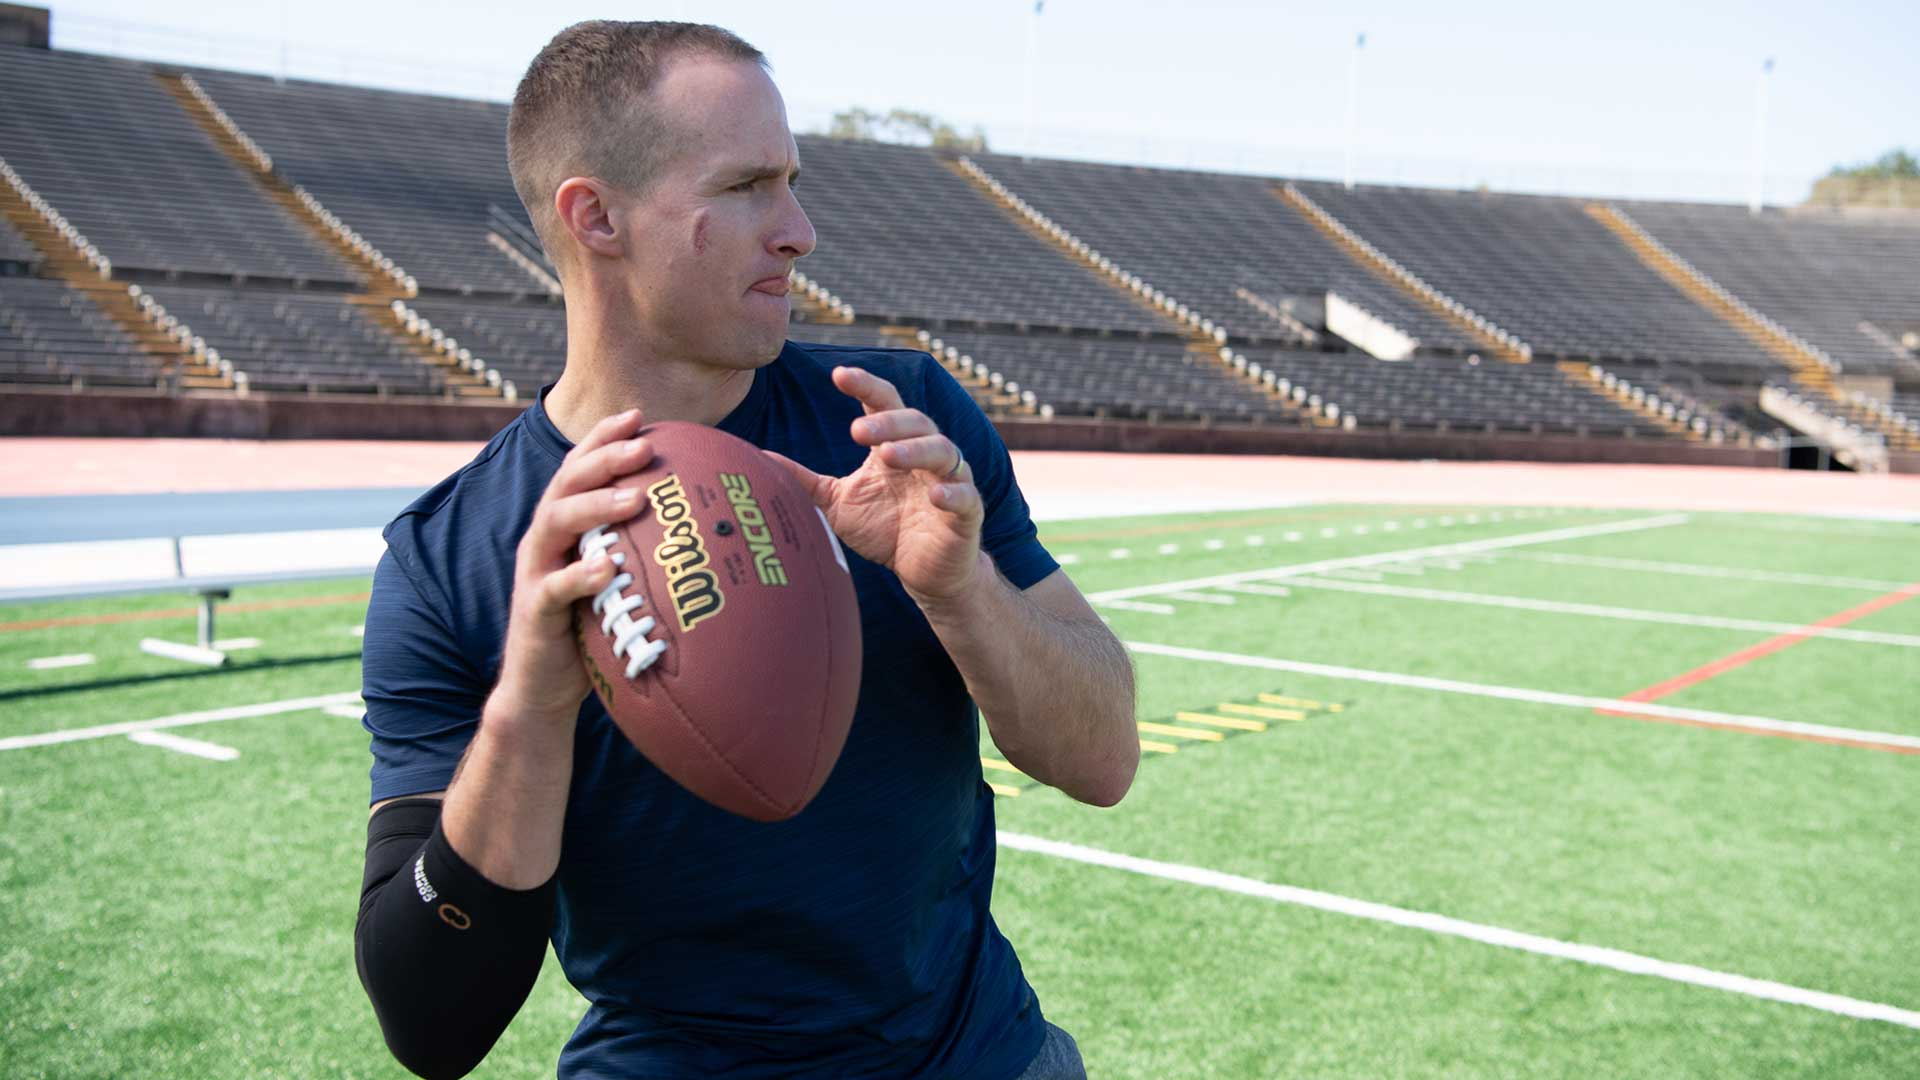 Get To Know Drew Brees